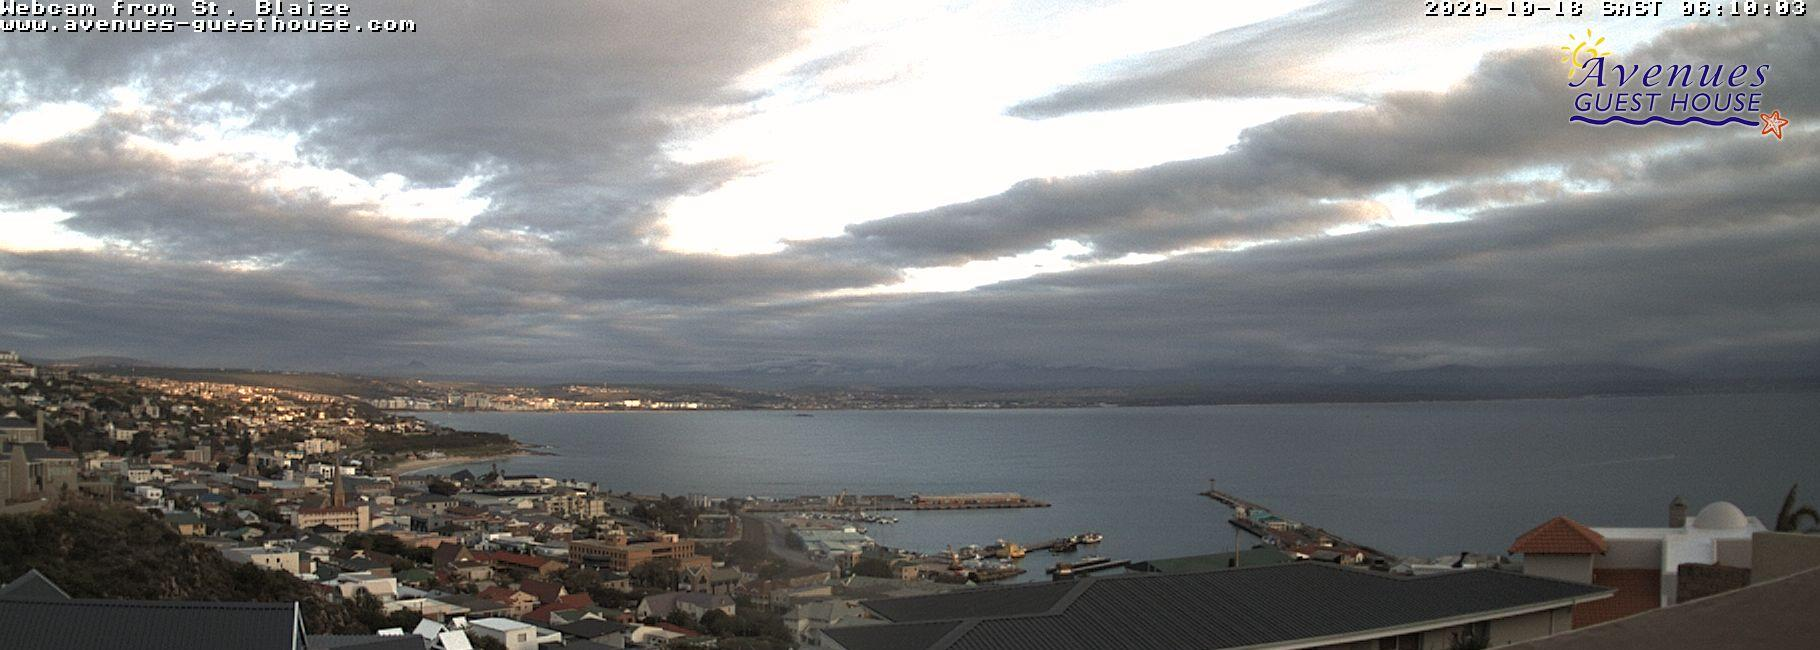 Webcam Mossel Bay Yachtclub - South Africa